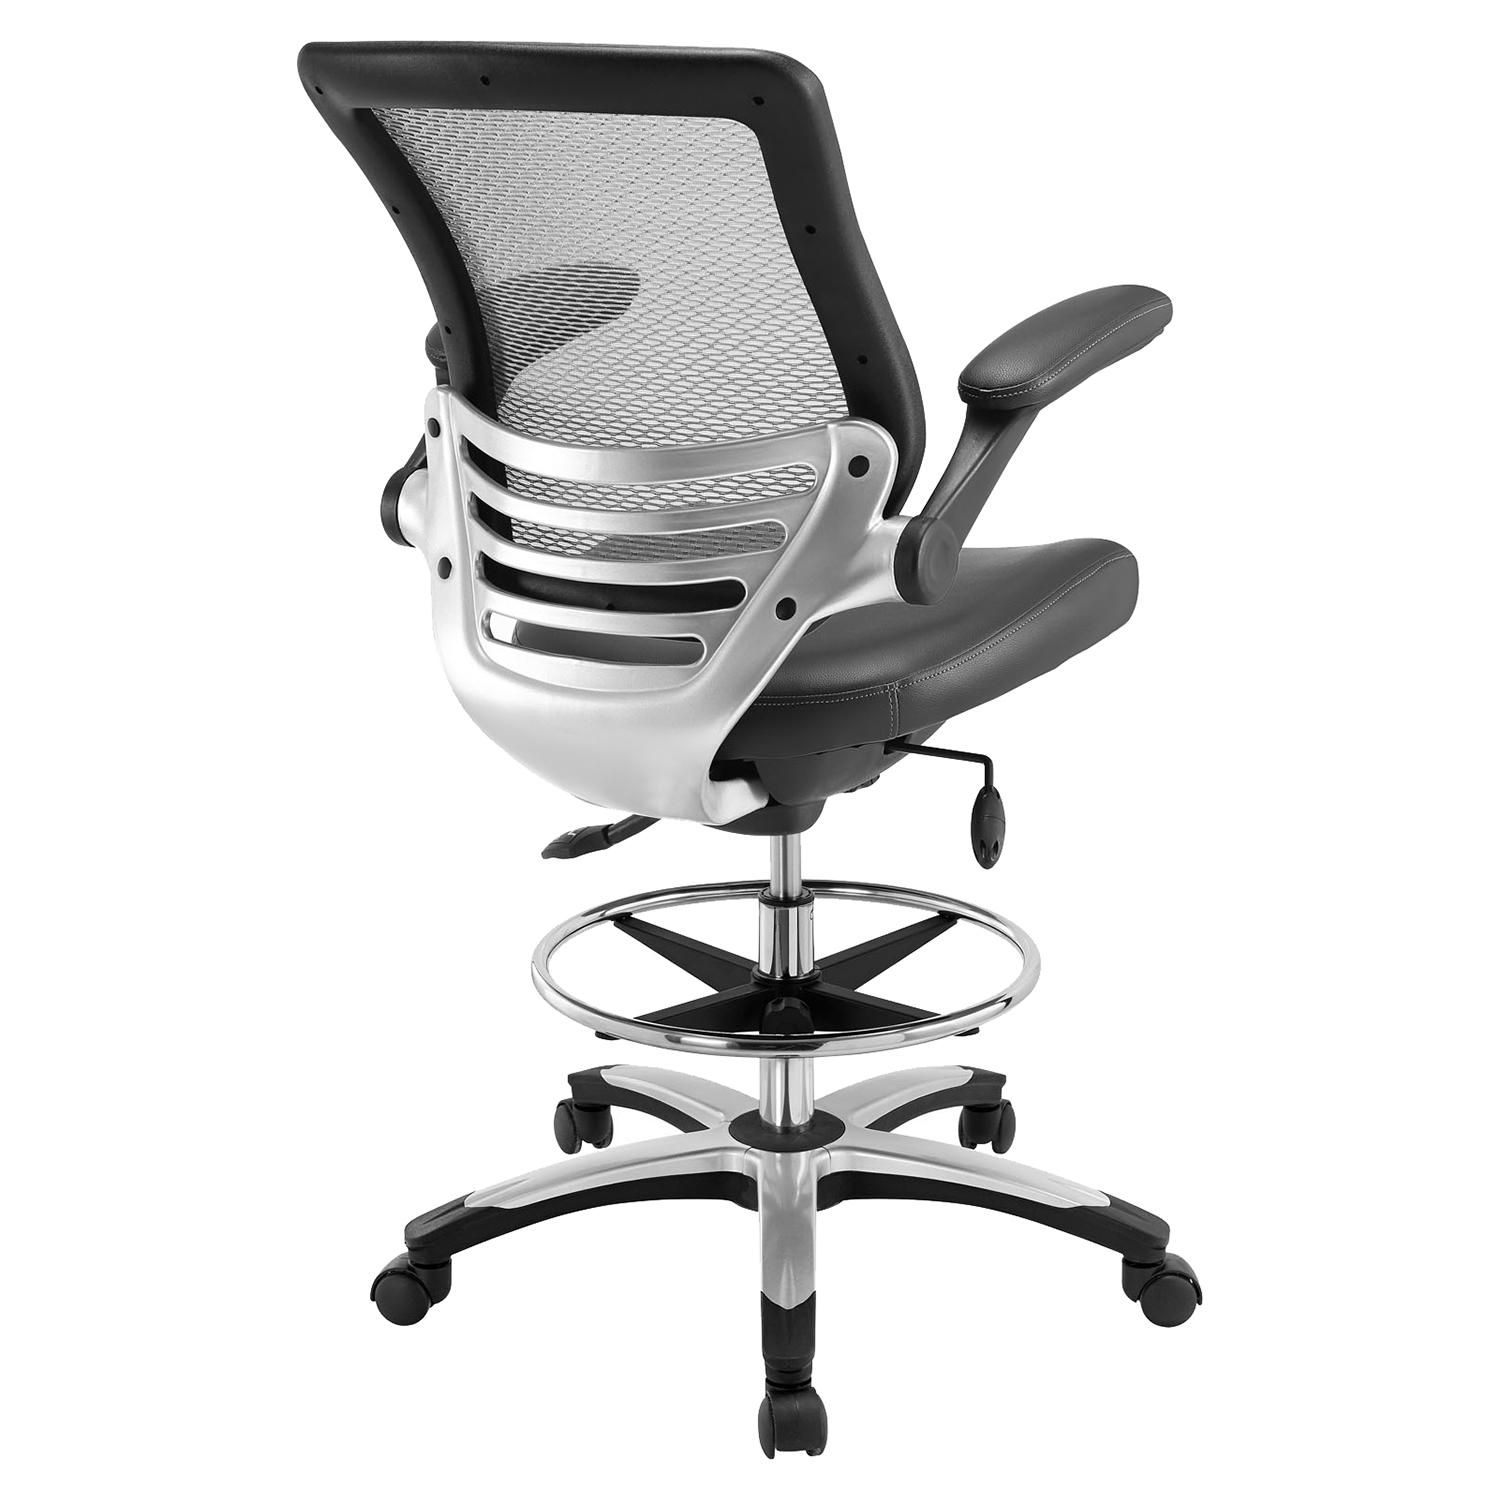 Edge Office Chair - Adjustable Height, Swivel, Gray - EEI-211-GRY